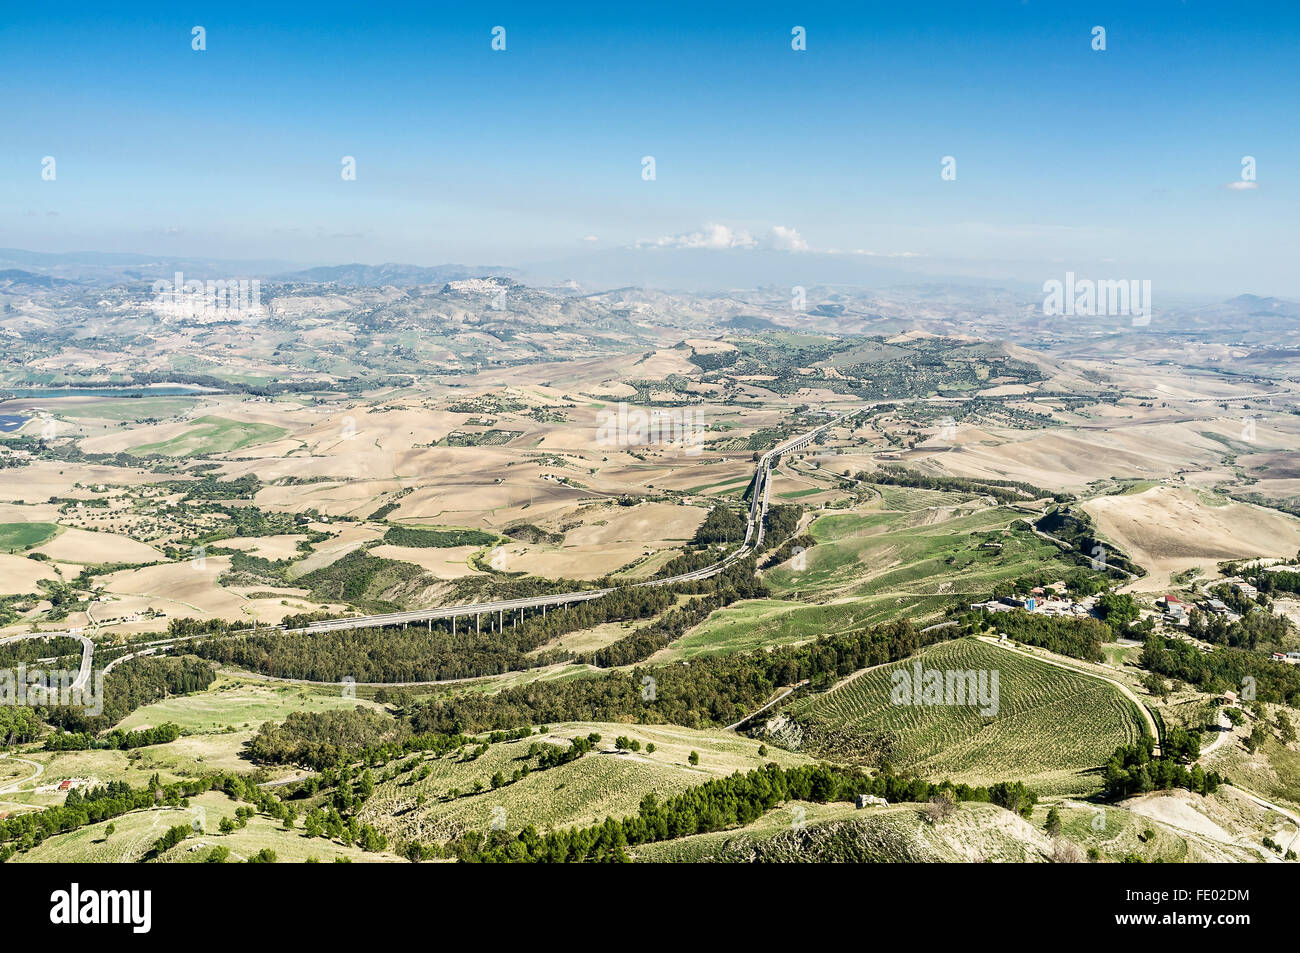 Elevated view of motorway landscape in Sicily, Italy - Stock Image